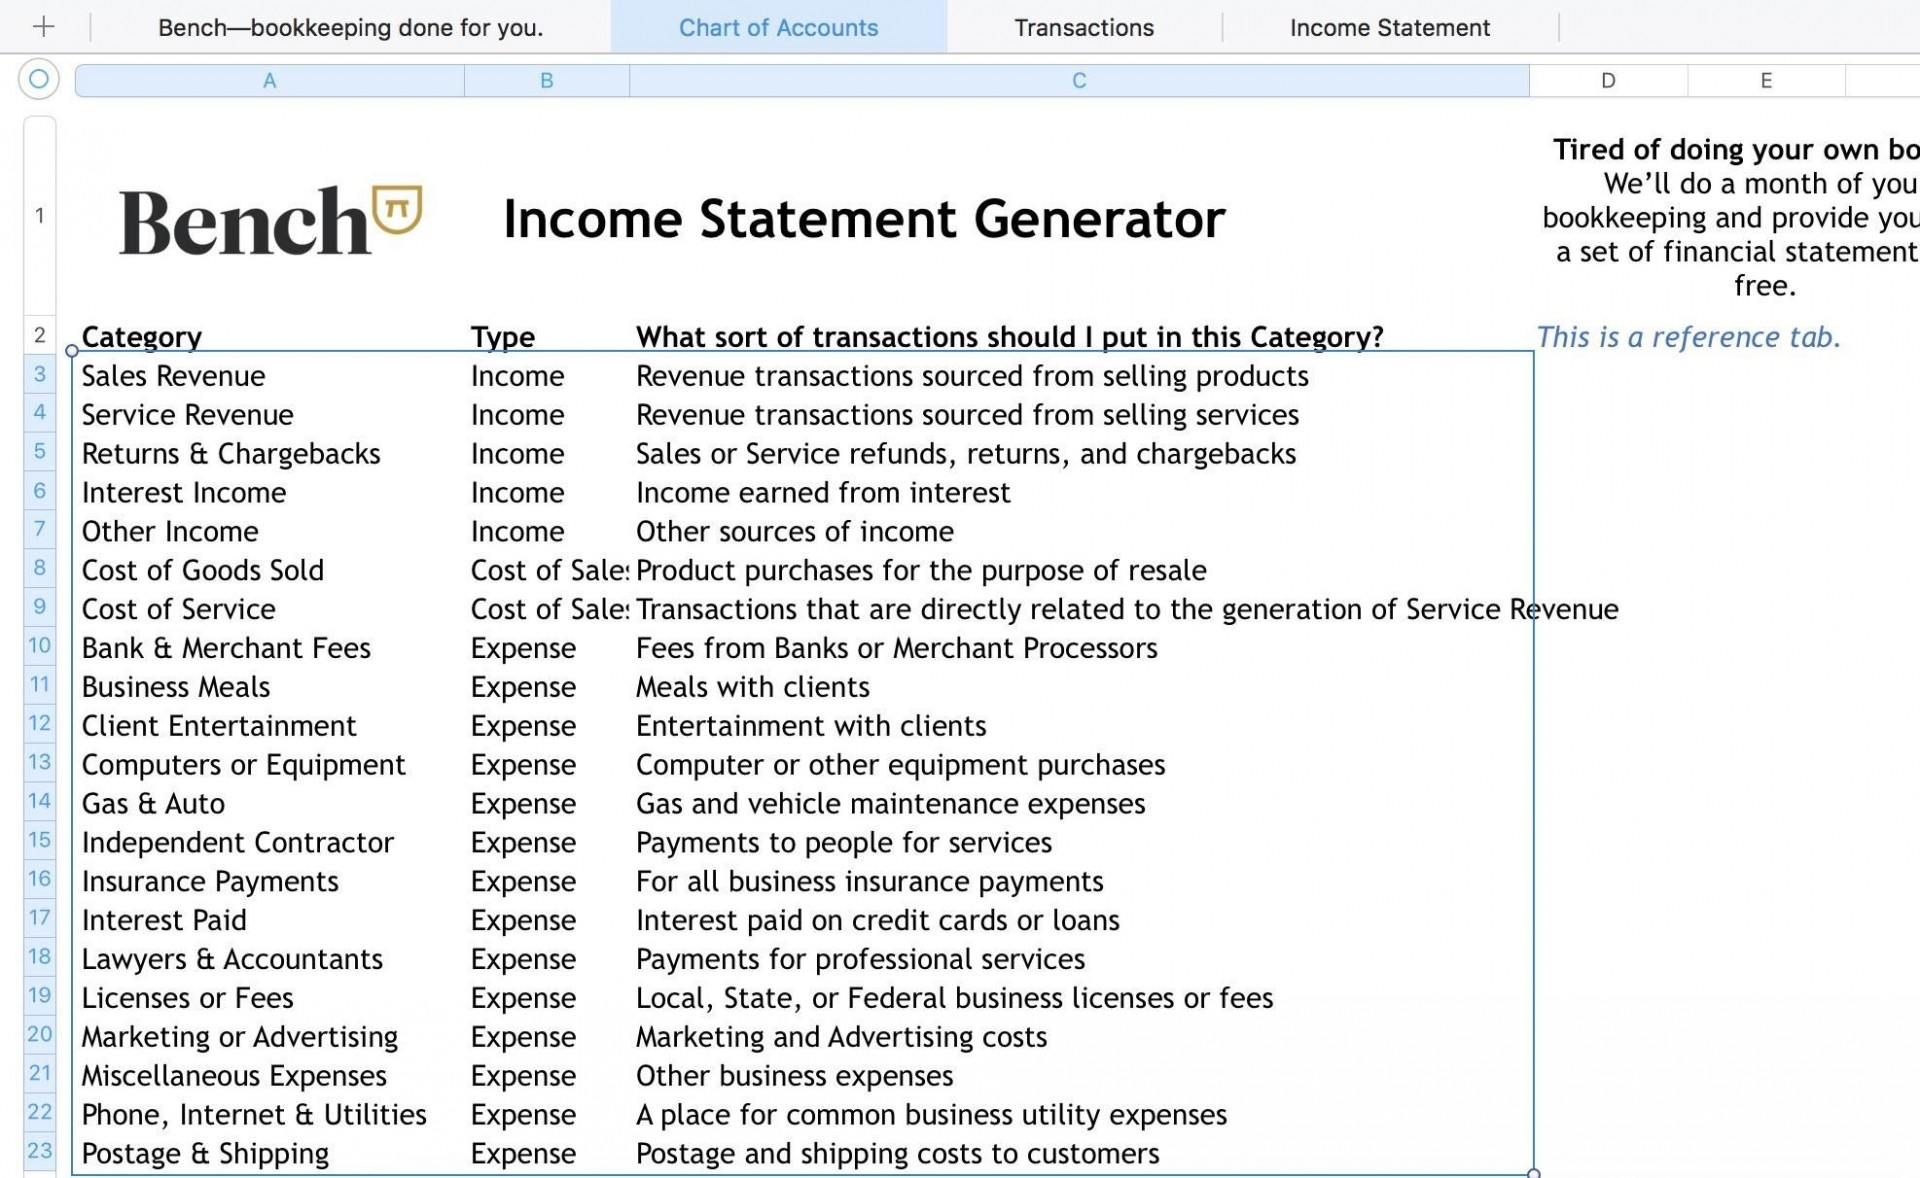 006 Unbelievable Monthly Income Statement Format Excel Photo  Free Download1920